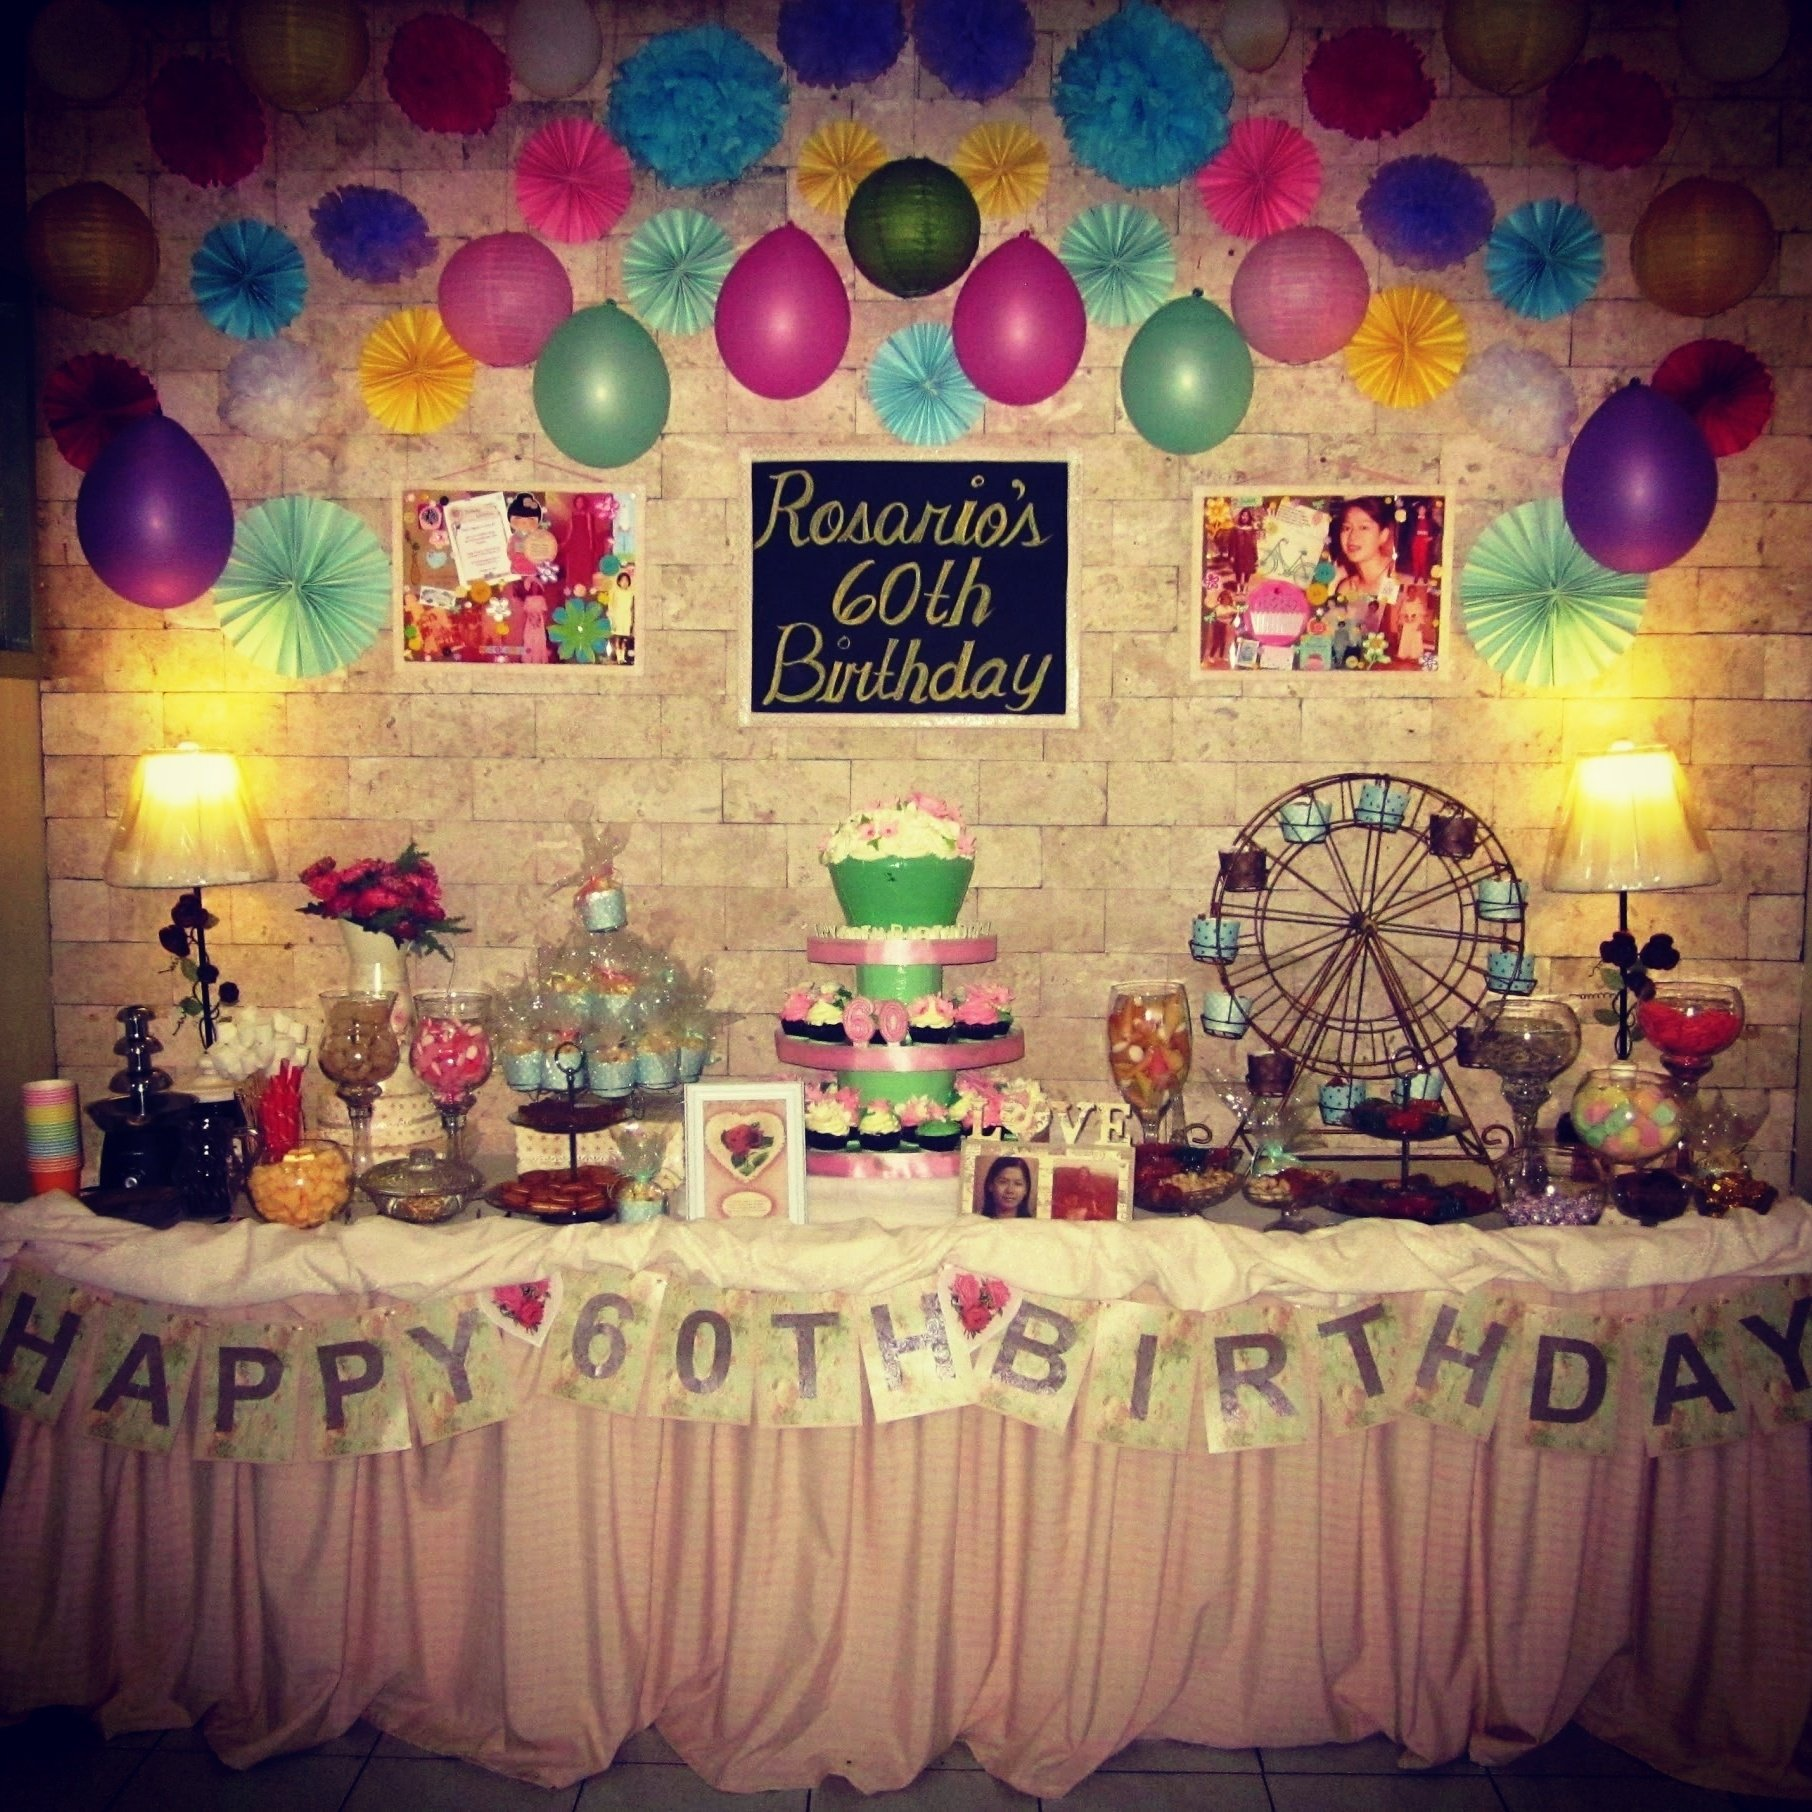 10 Ideal Surprise 60Th Birthday Party Ideas 60th birthday party ideas for mom plus mum 60th birthday gift ideas 3 2020